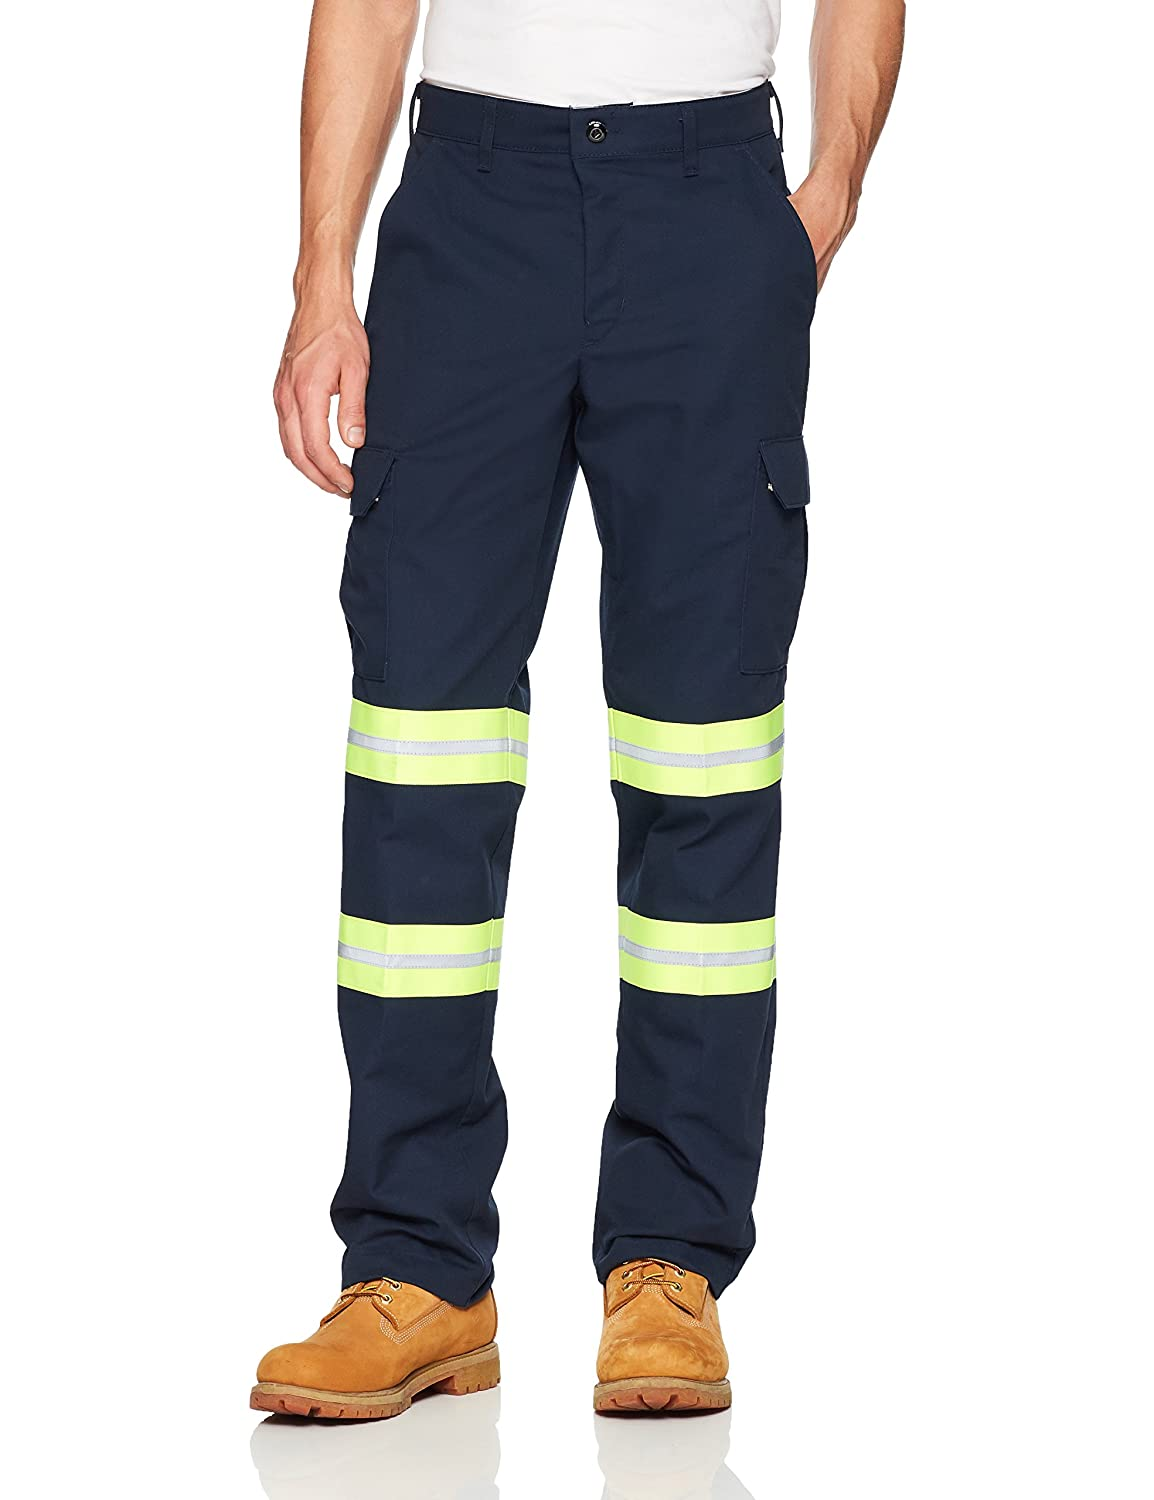 Red Kap PANTS メンズ B072ZSQSN8 36W x 30L|Navy With Yellow/Green Visibility Trim Navy With Yellow/Green Visibility Trim 36W x 30L